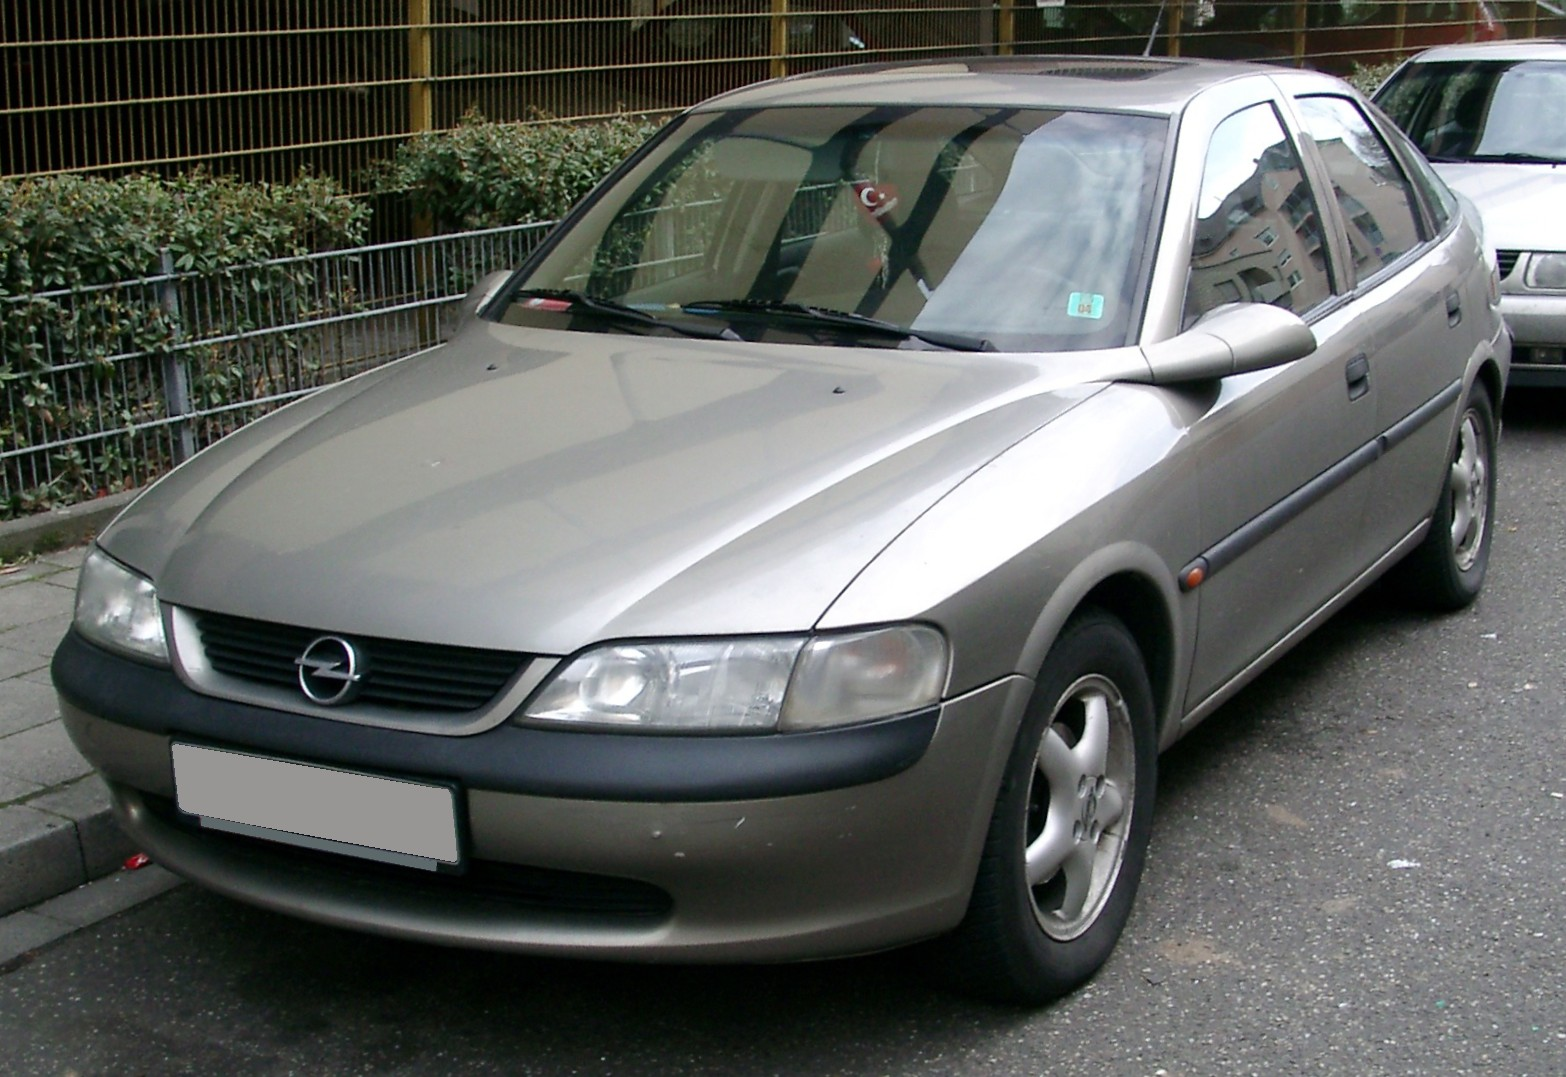 chevrolet vectra seriess #10